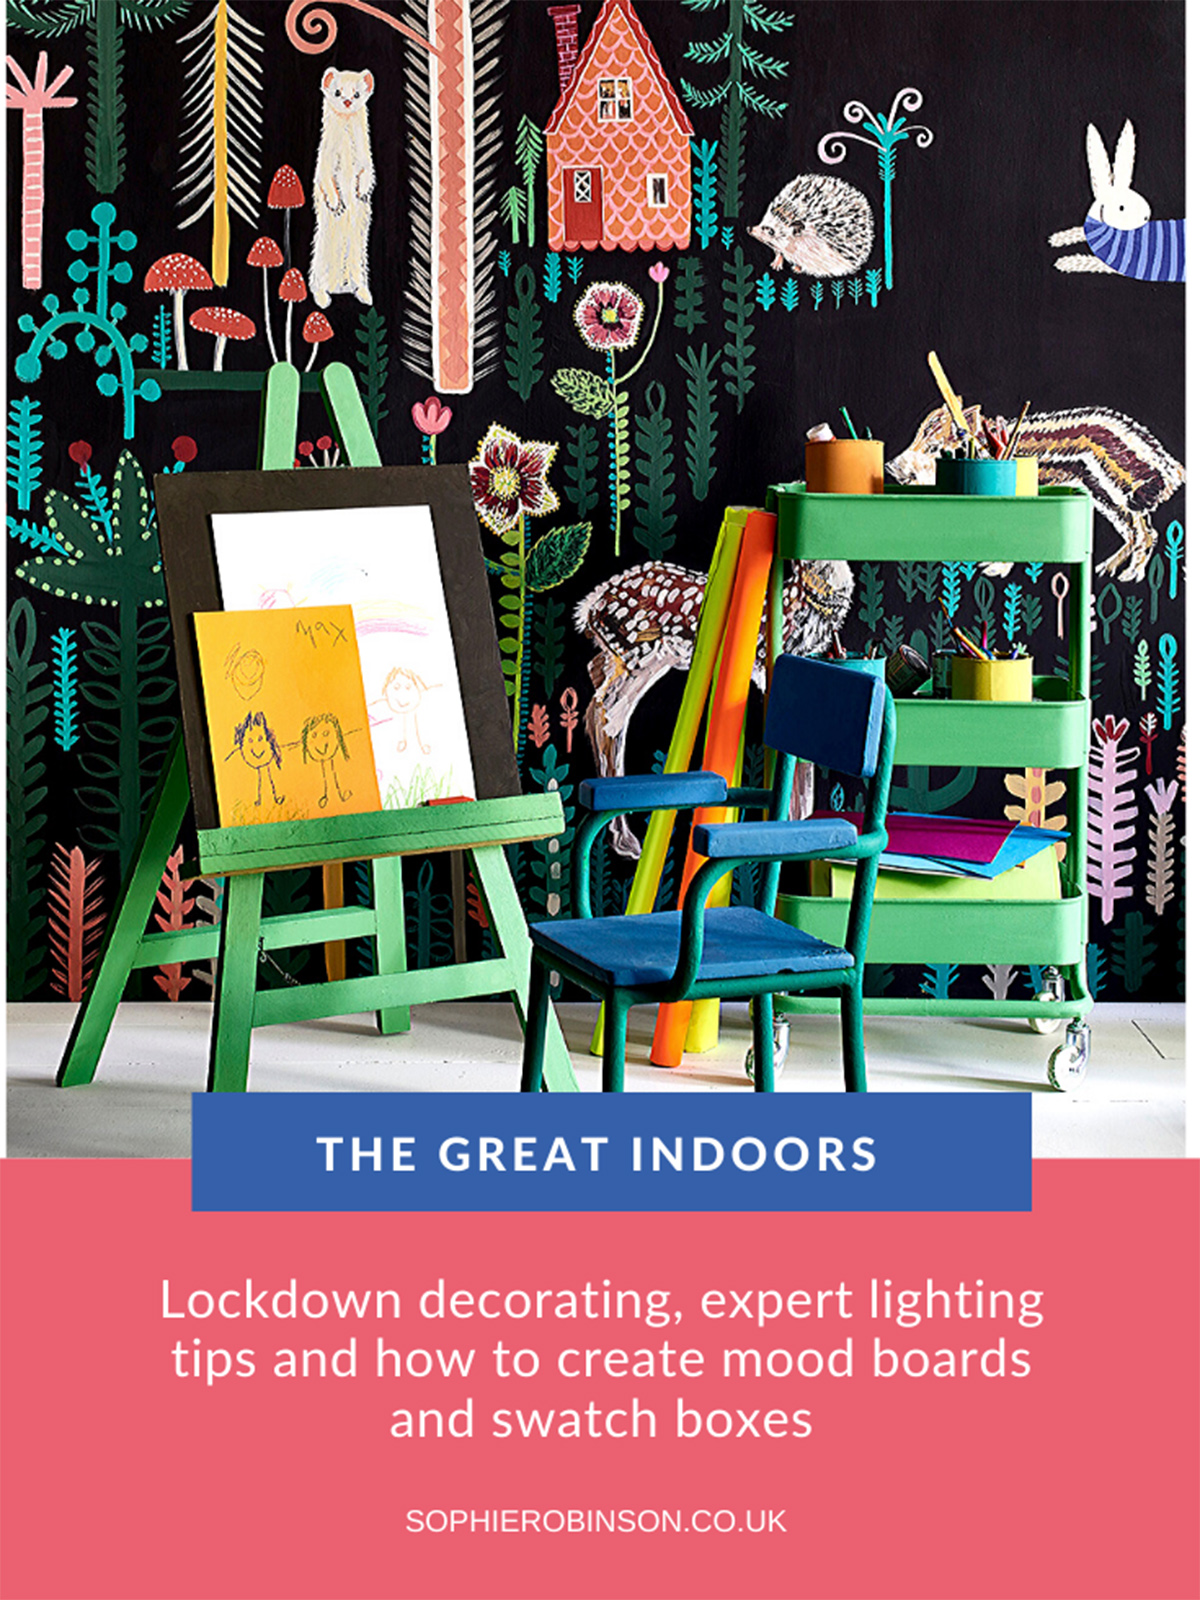 The Great Indoors showing colourful painted kids furniture by Annie Sloan and painted mural by Lucy Tiffney.